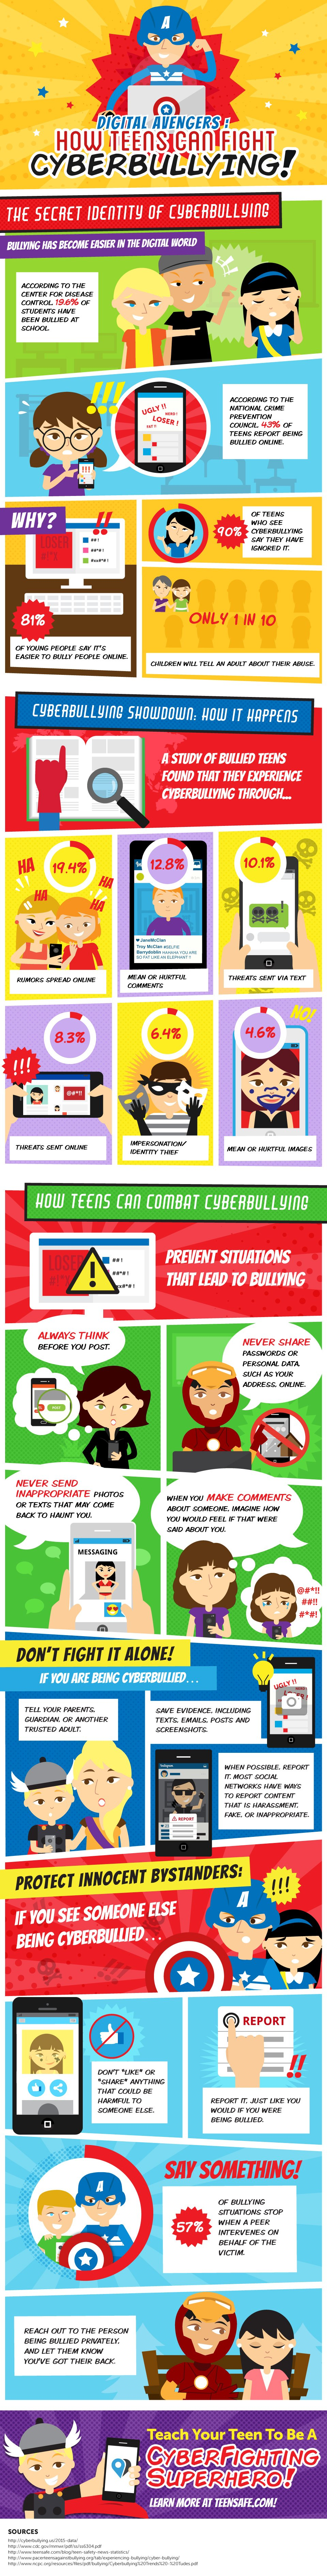 Digital Avengers: How Teens Can Fight Cyberbullying [Infographic] | Social Media Today